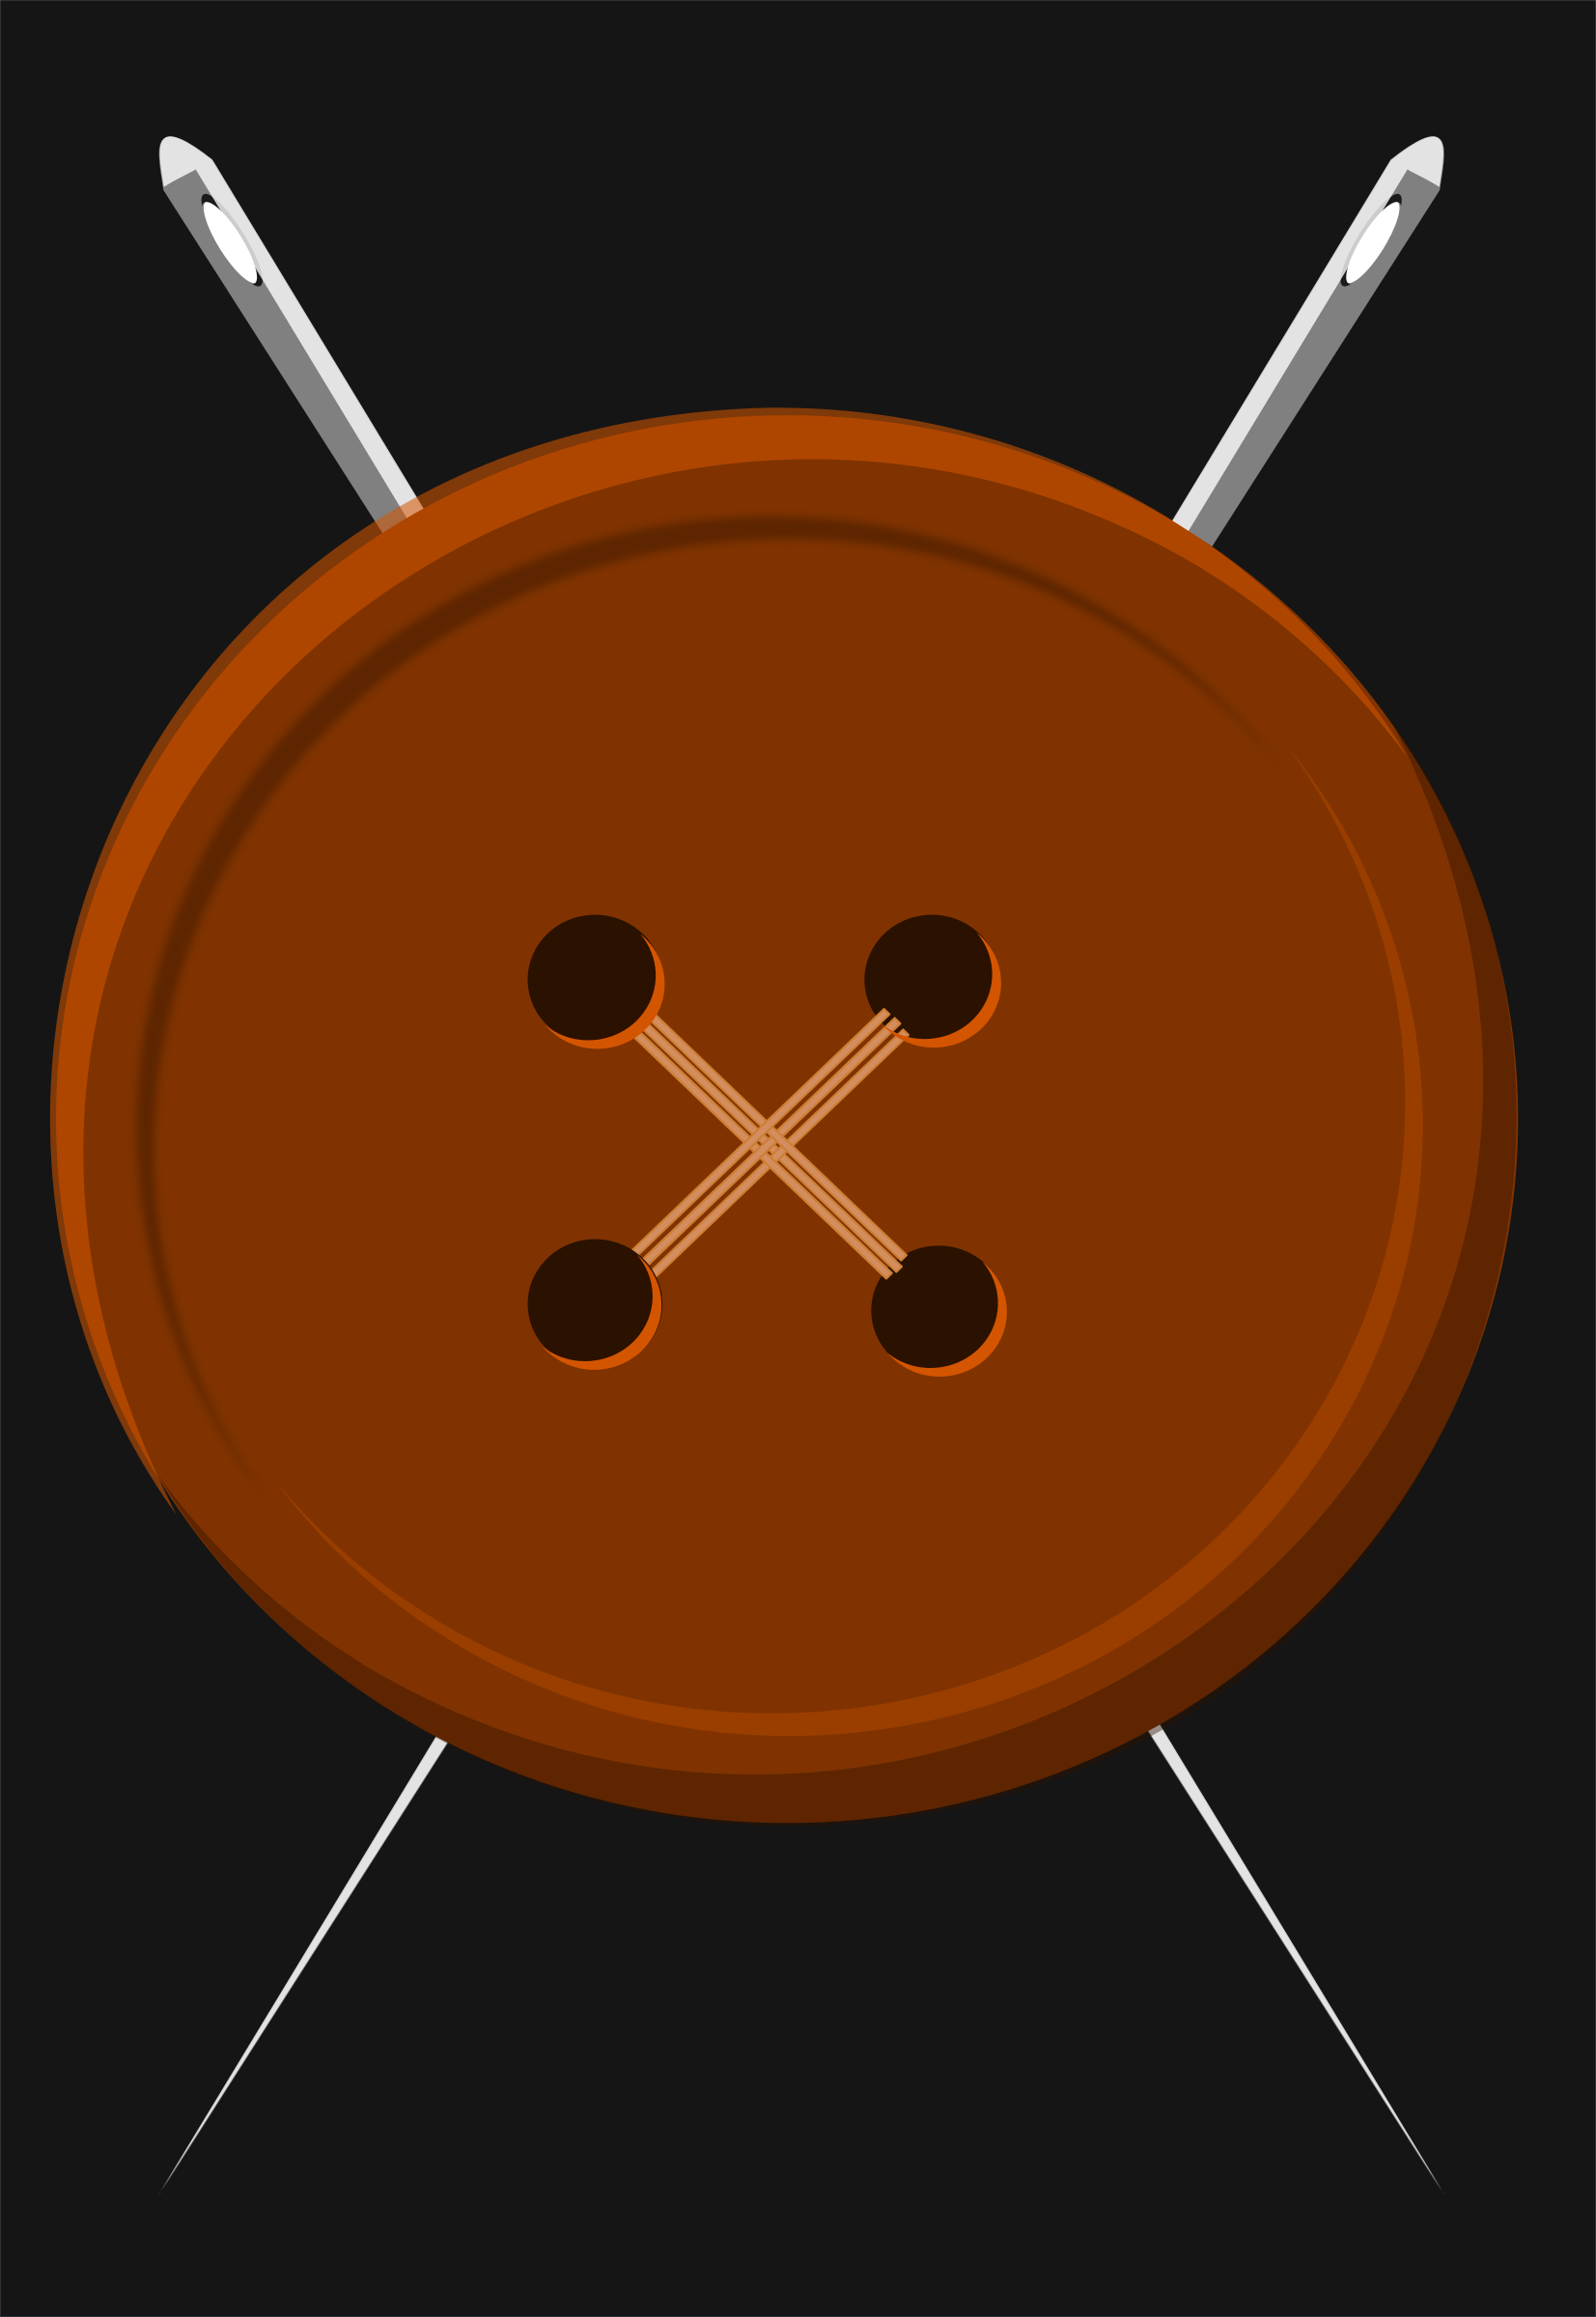 button and needles by pauthonic